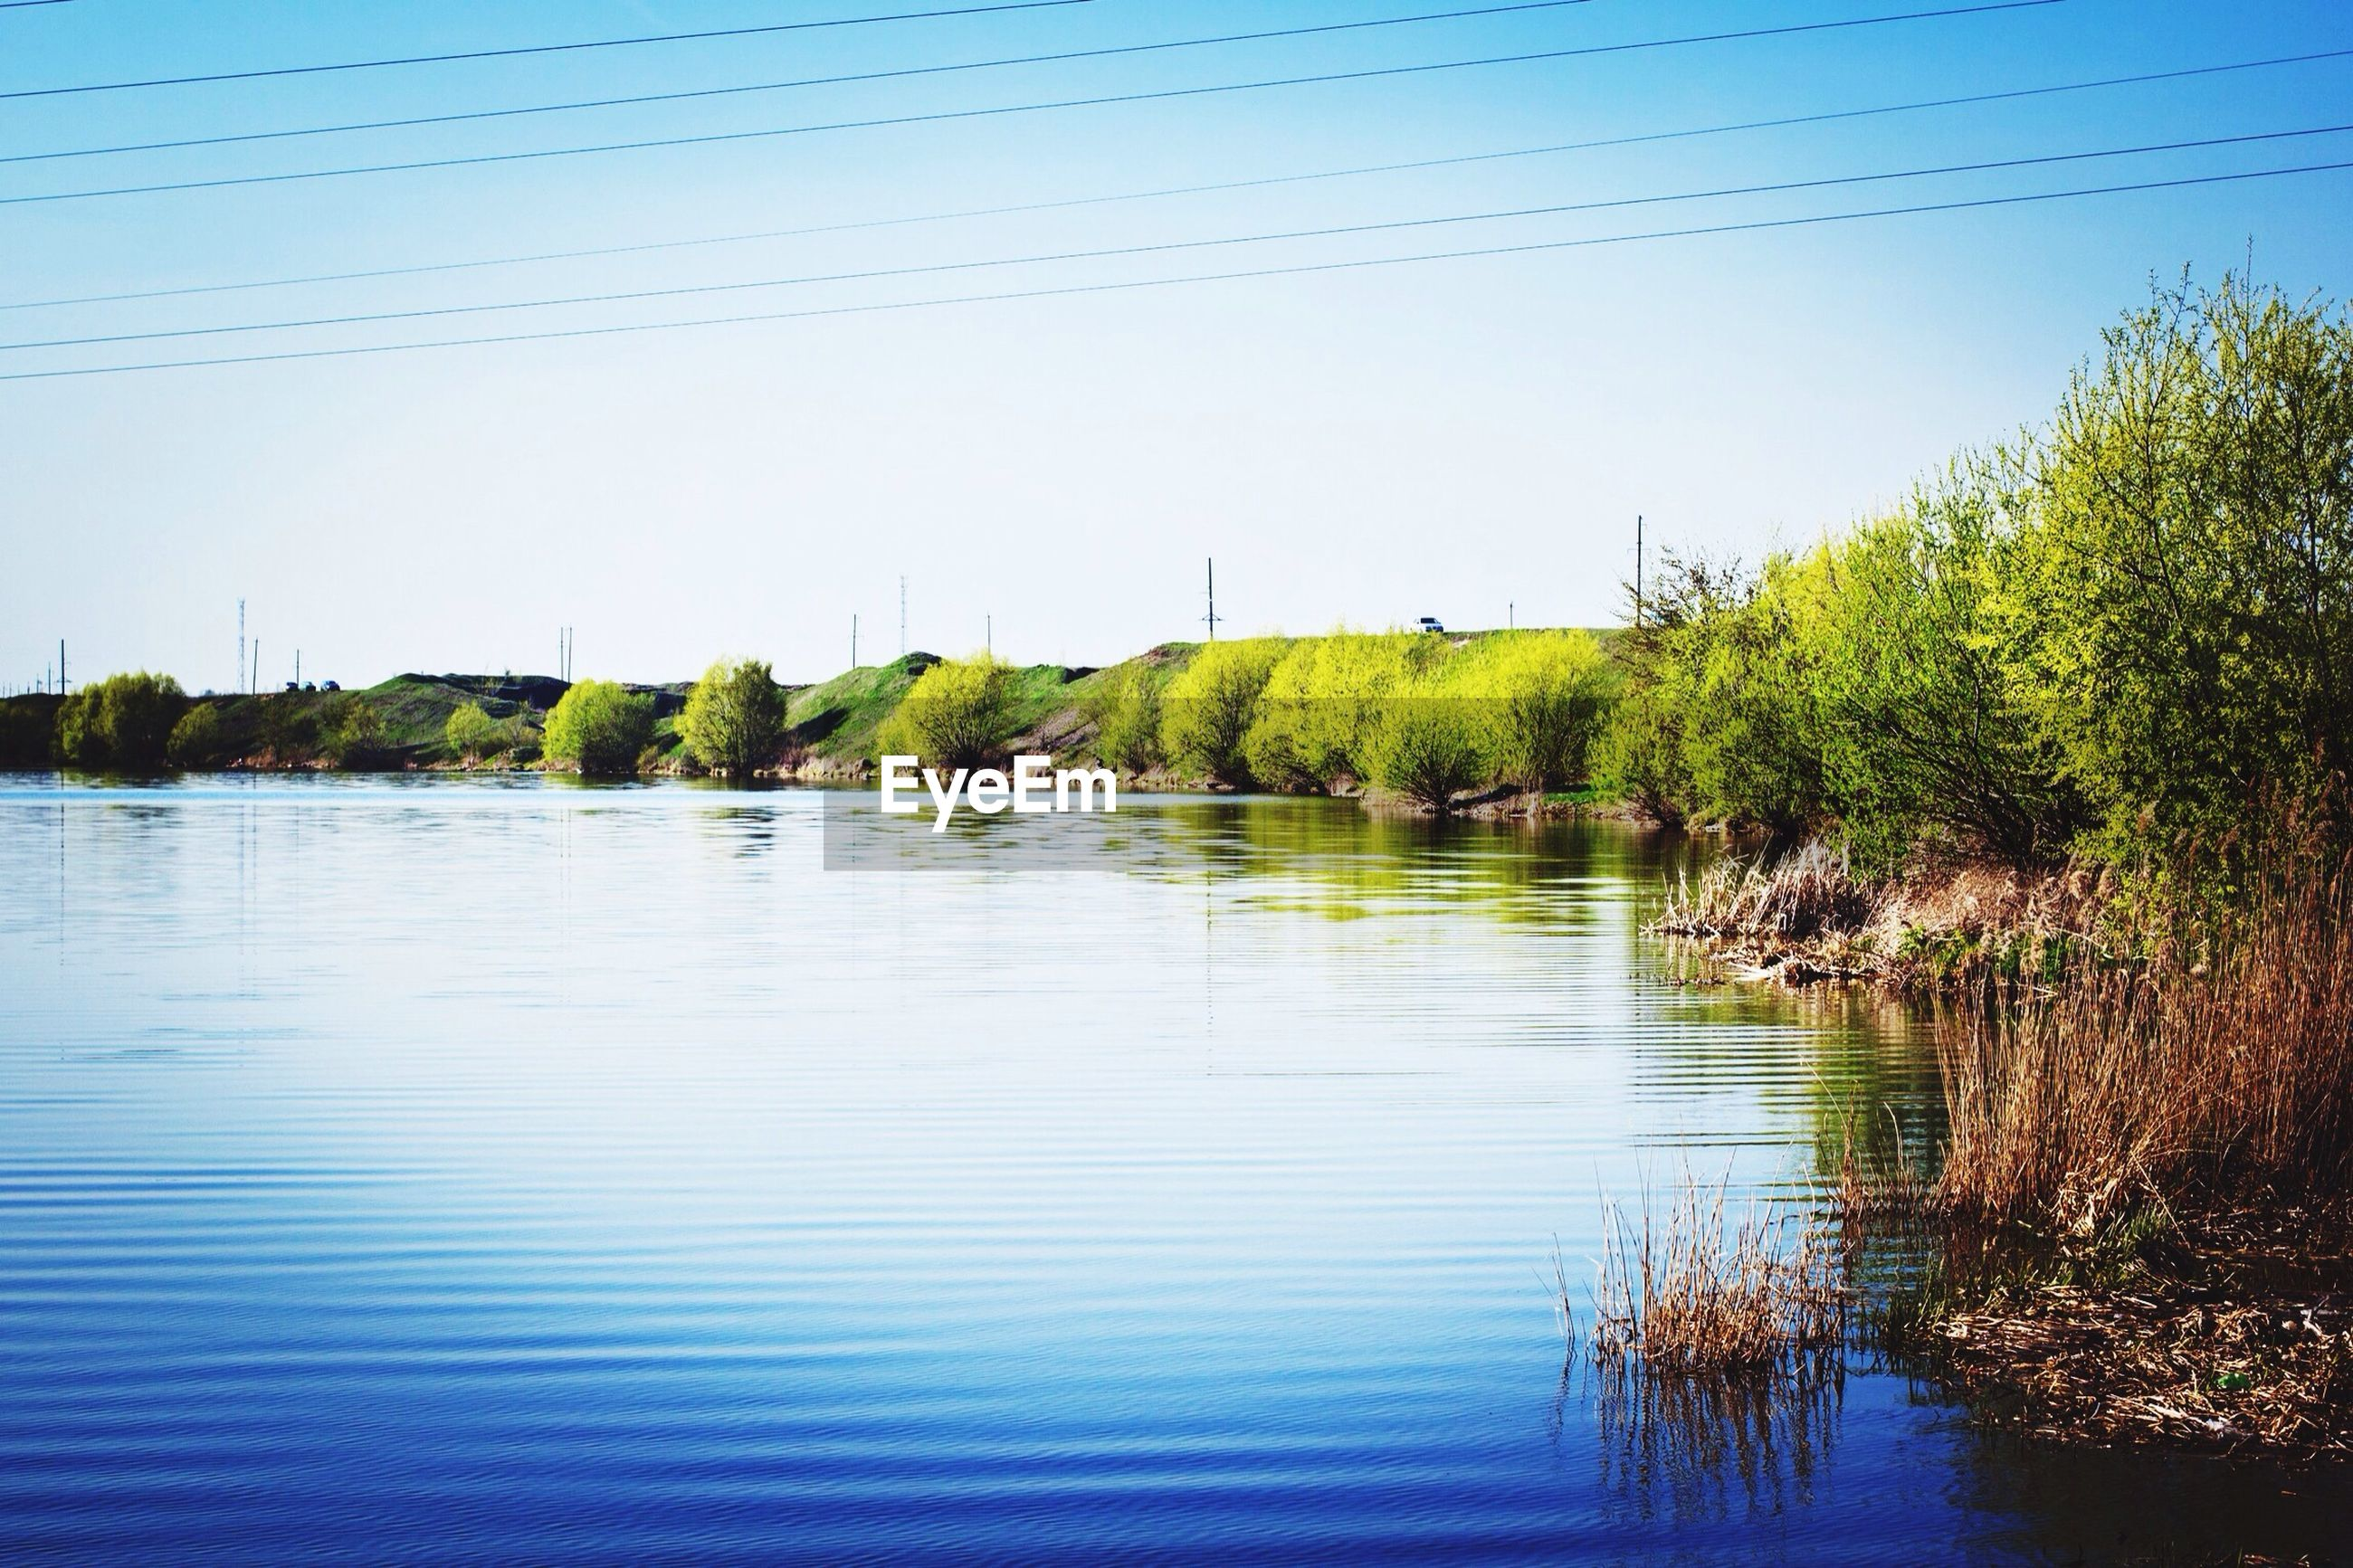 clear sky, water, tree, tranquility, tranquil scene, copy space, blue, lake, scenics, reflection, nature, beauty in nature, waterfront, river, plant, growth, calm, rippled, outdoors, day